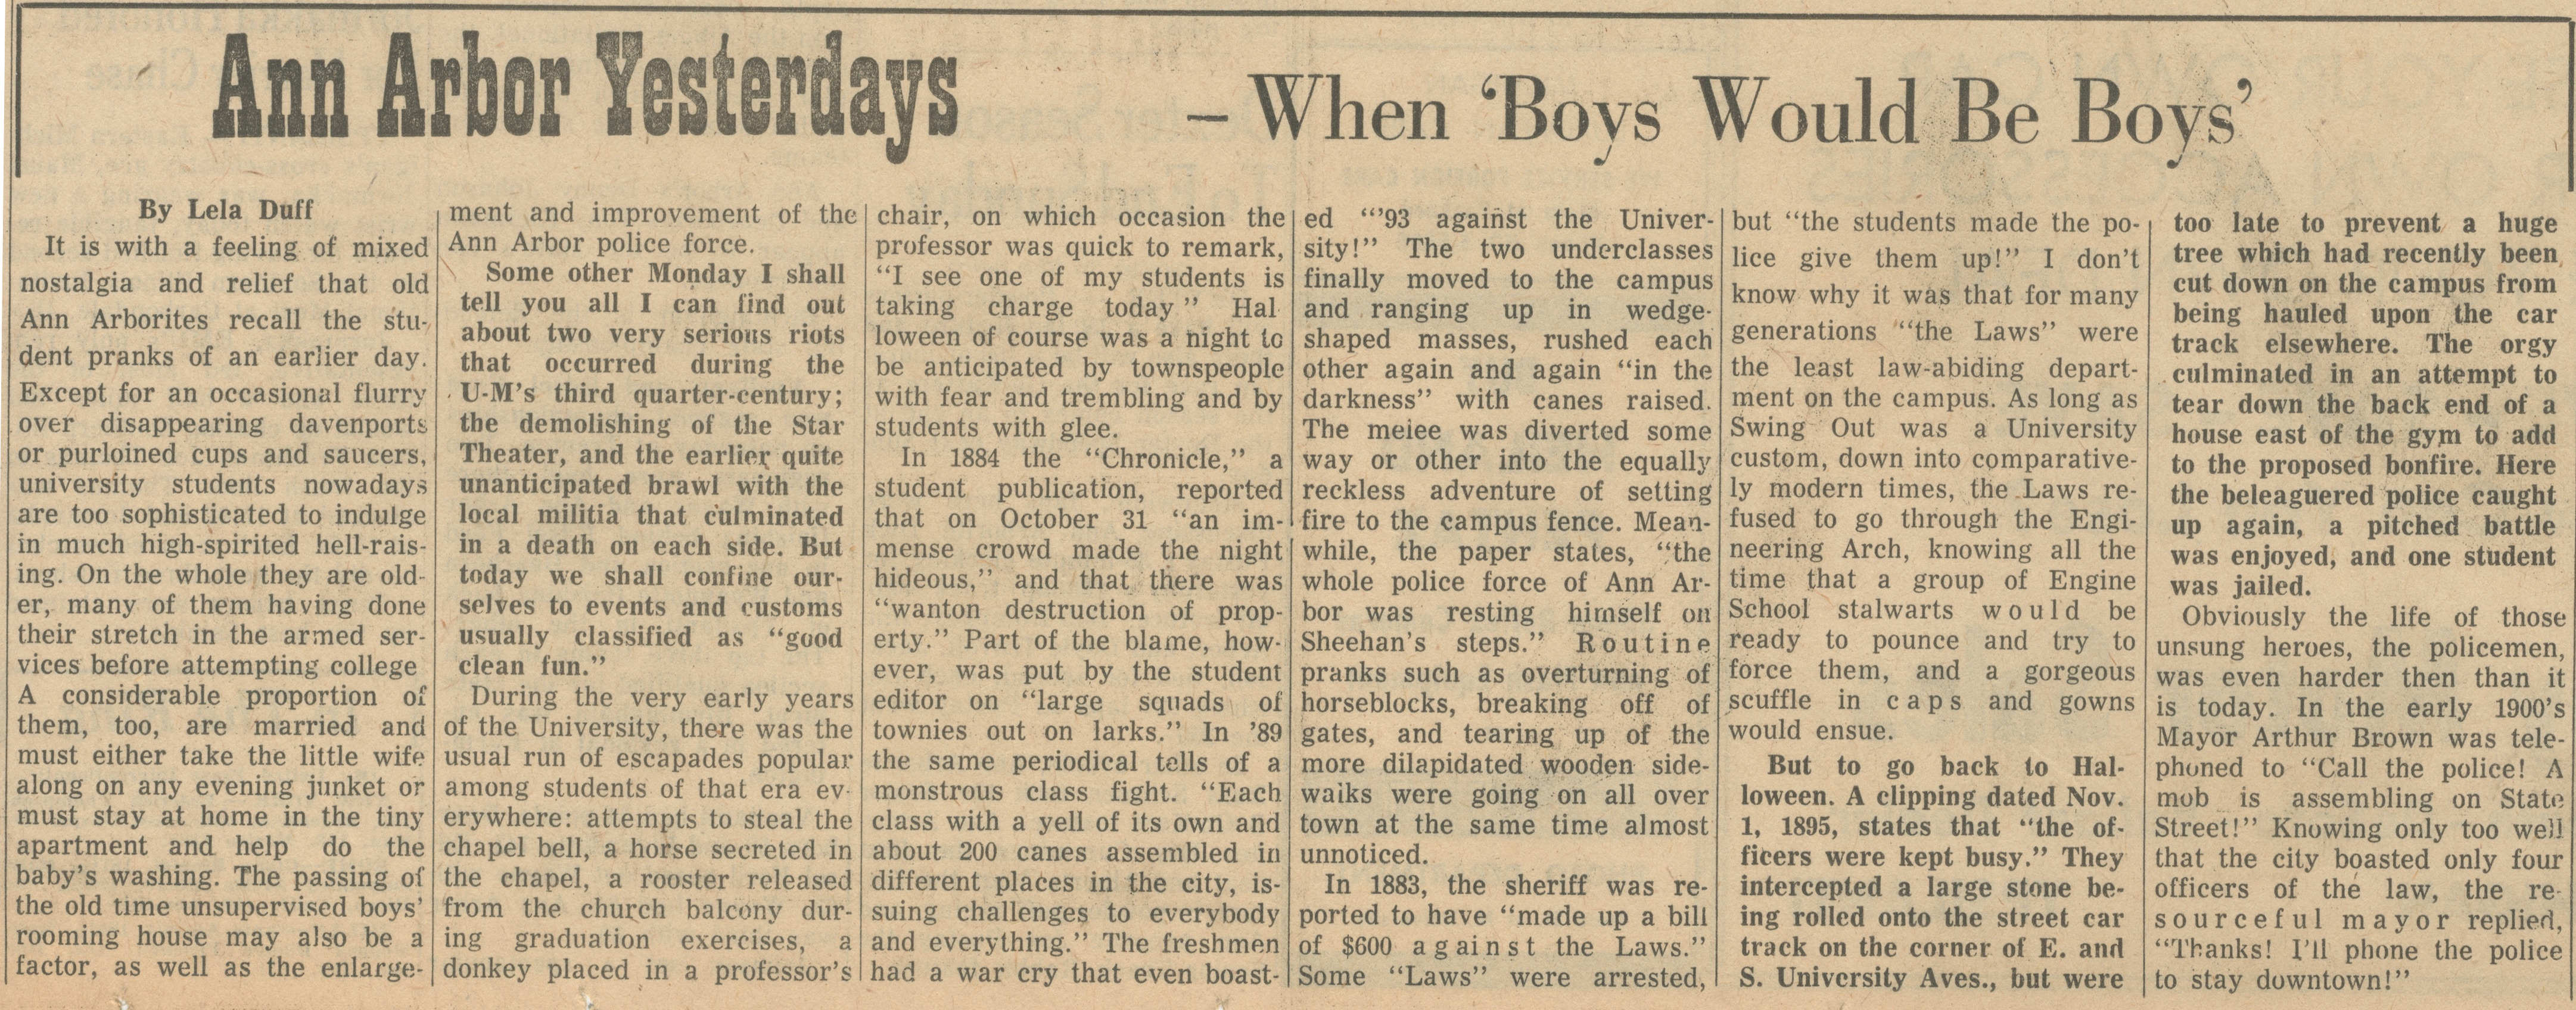 Ann Arbor Yesterdays ~ When 'Boys Would Be Boys' image